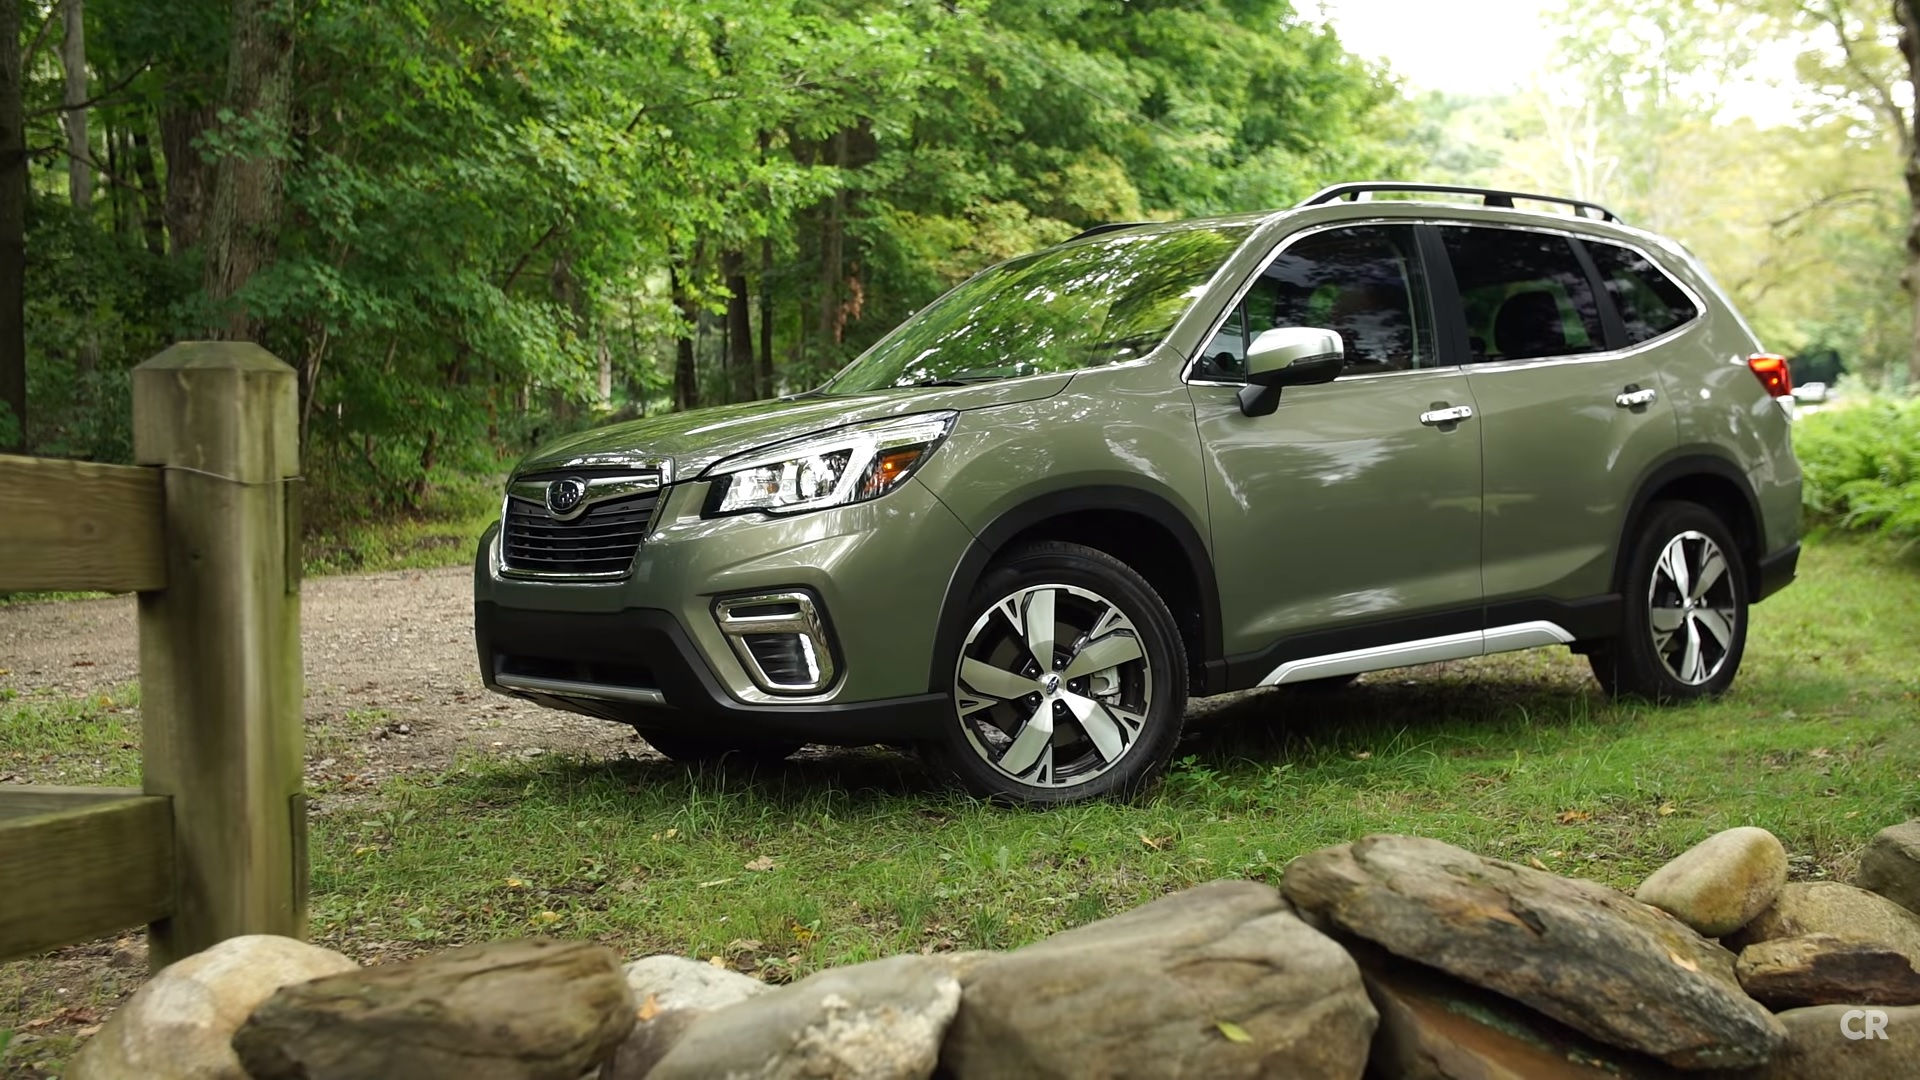 Video Reviews For The 2019 Subaru Forester Are Finally In And You